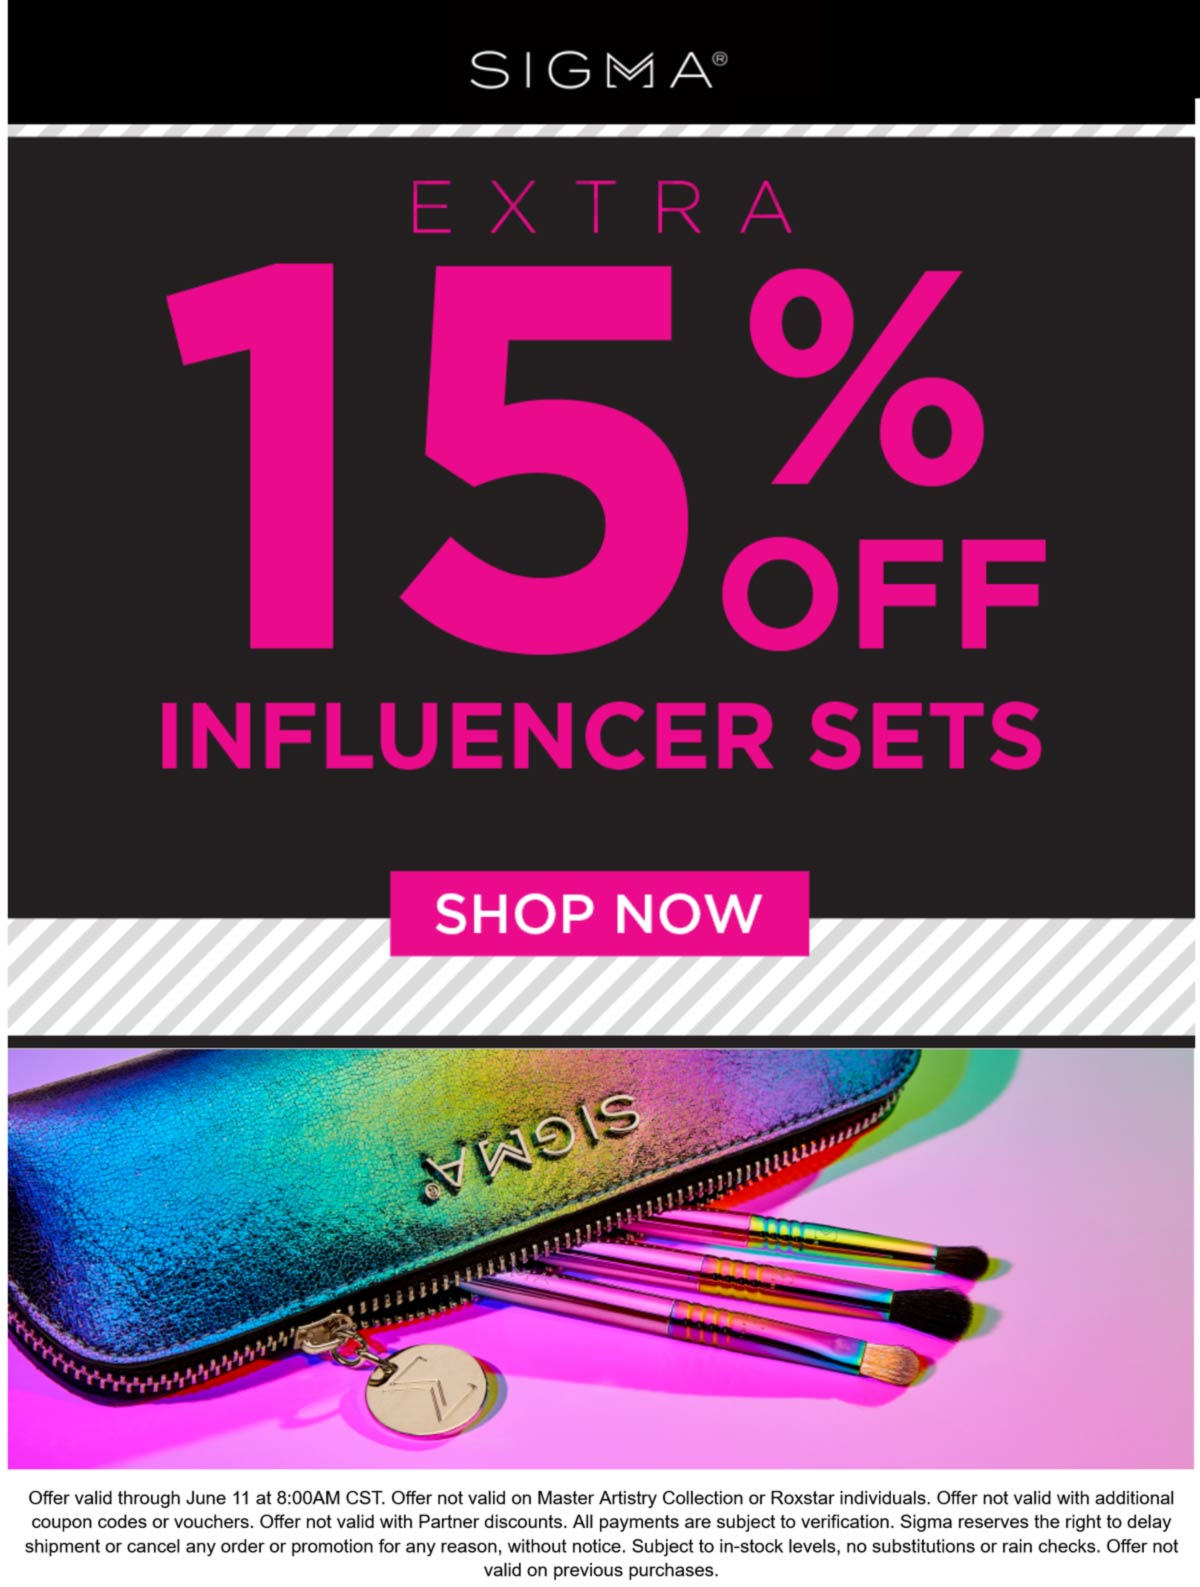 Sigma stores Coupon  Extra 15% off influencer sets at Sigma beauty #sigma